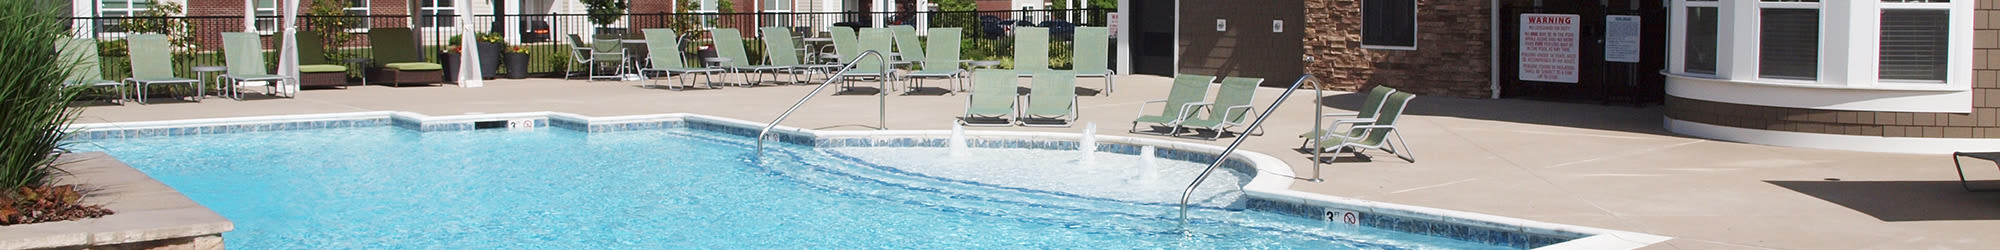 Great amenities at Meridian on Shelbyville